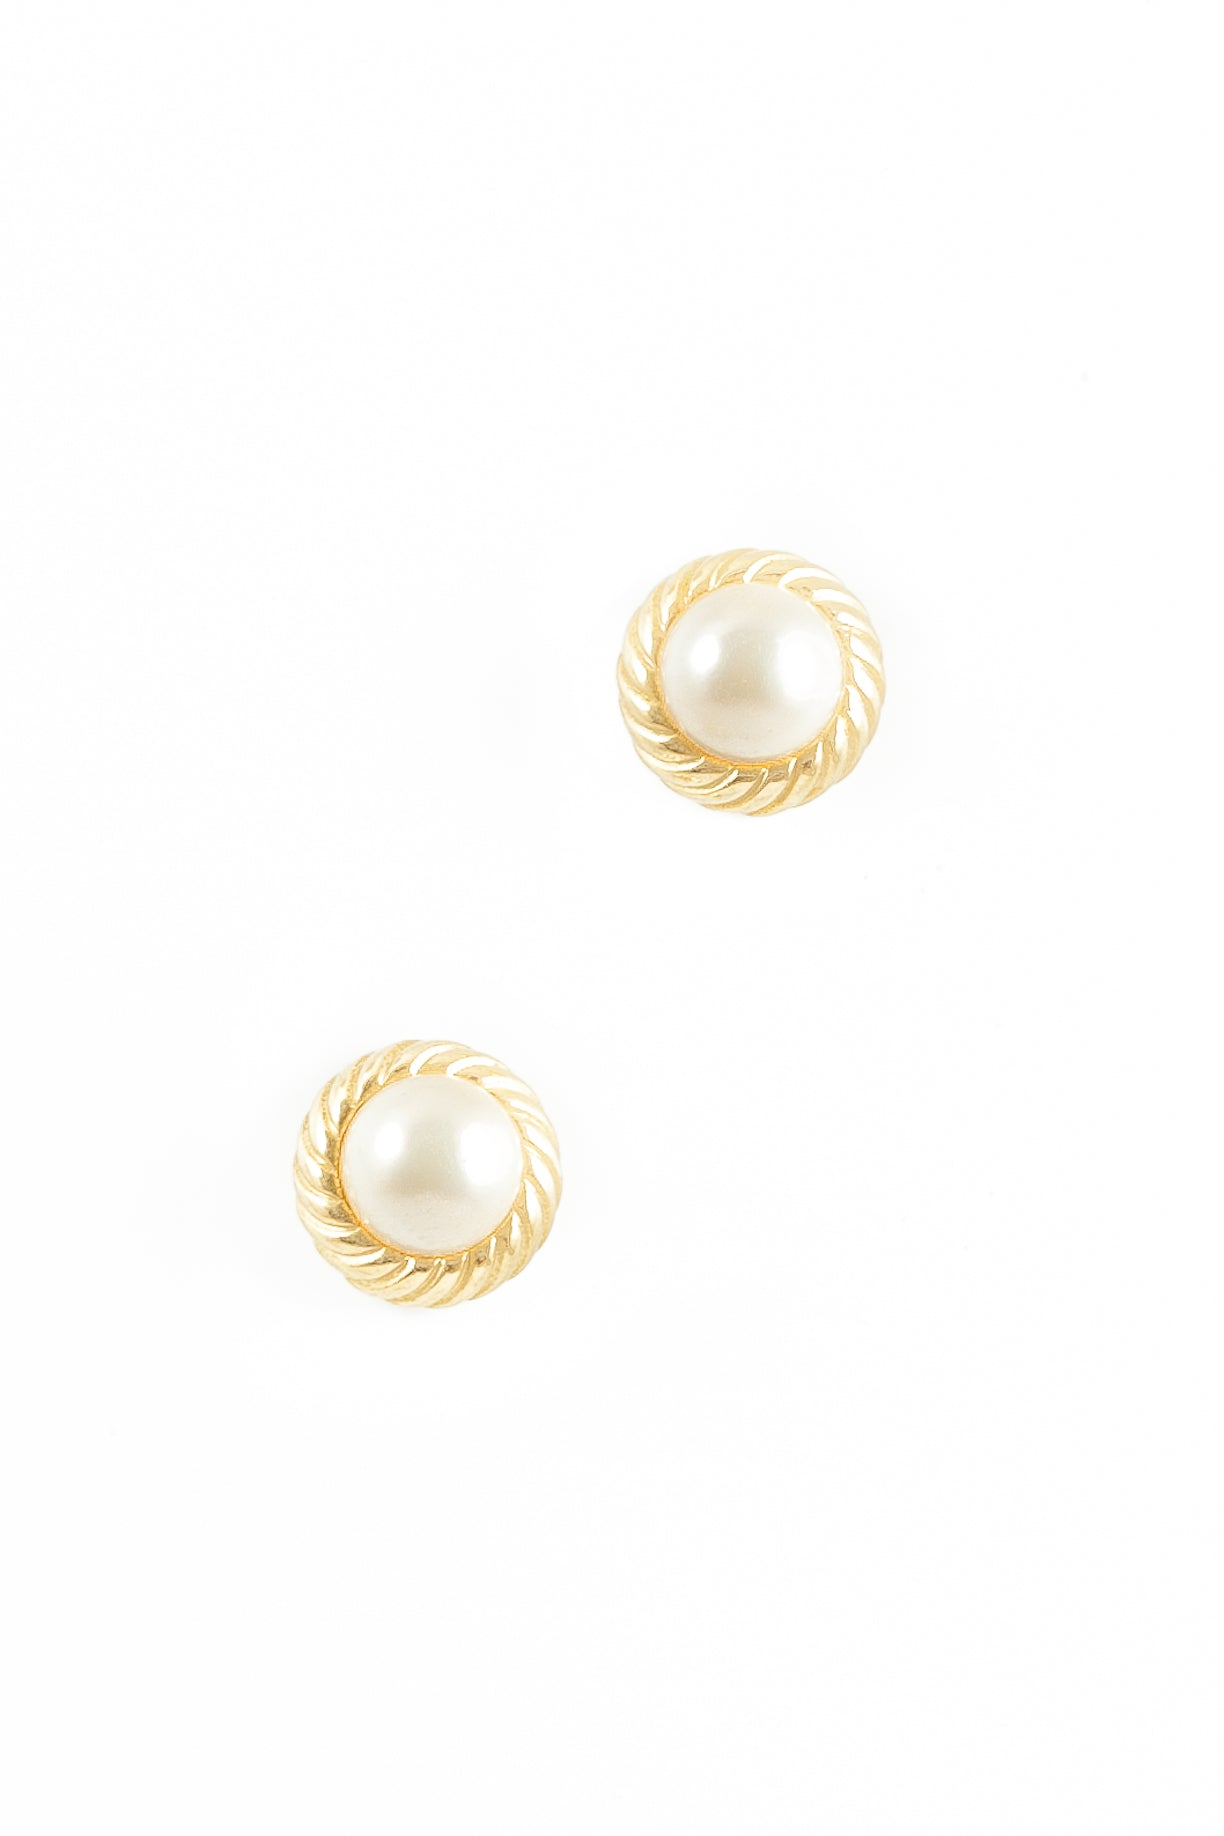 70's__Marvella__Gold Framed Pearl Earrings